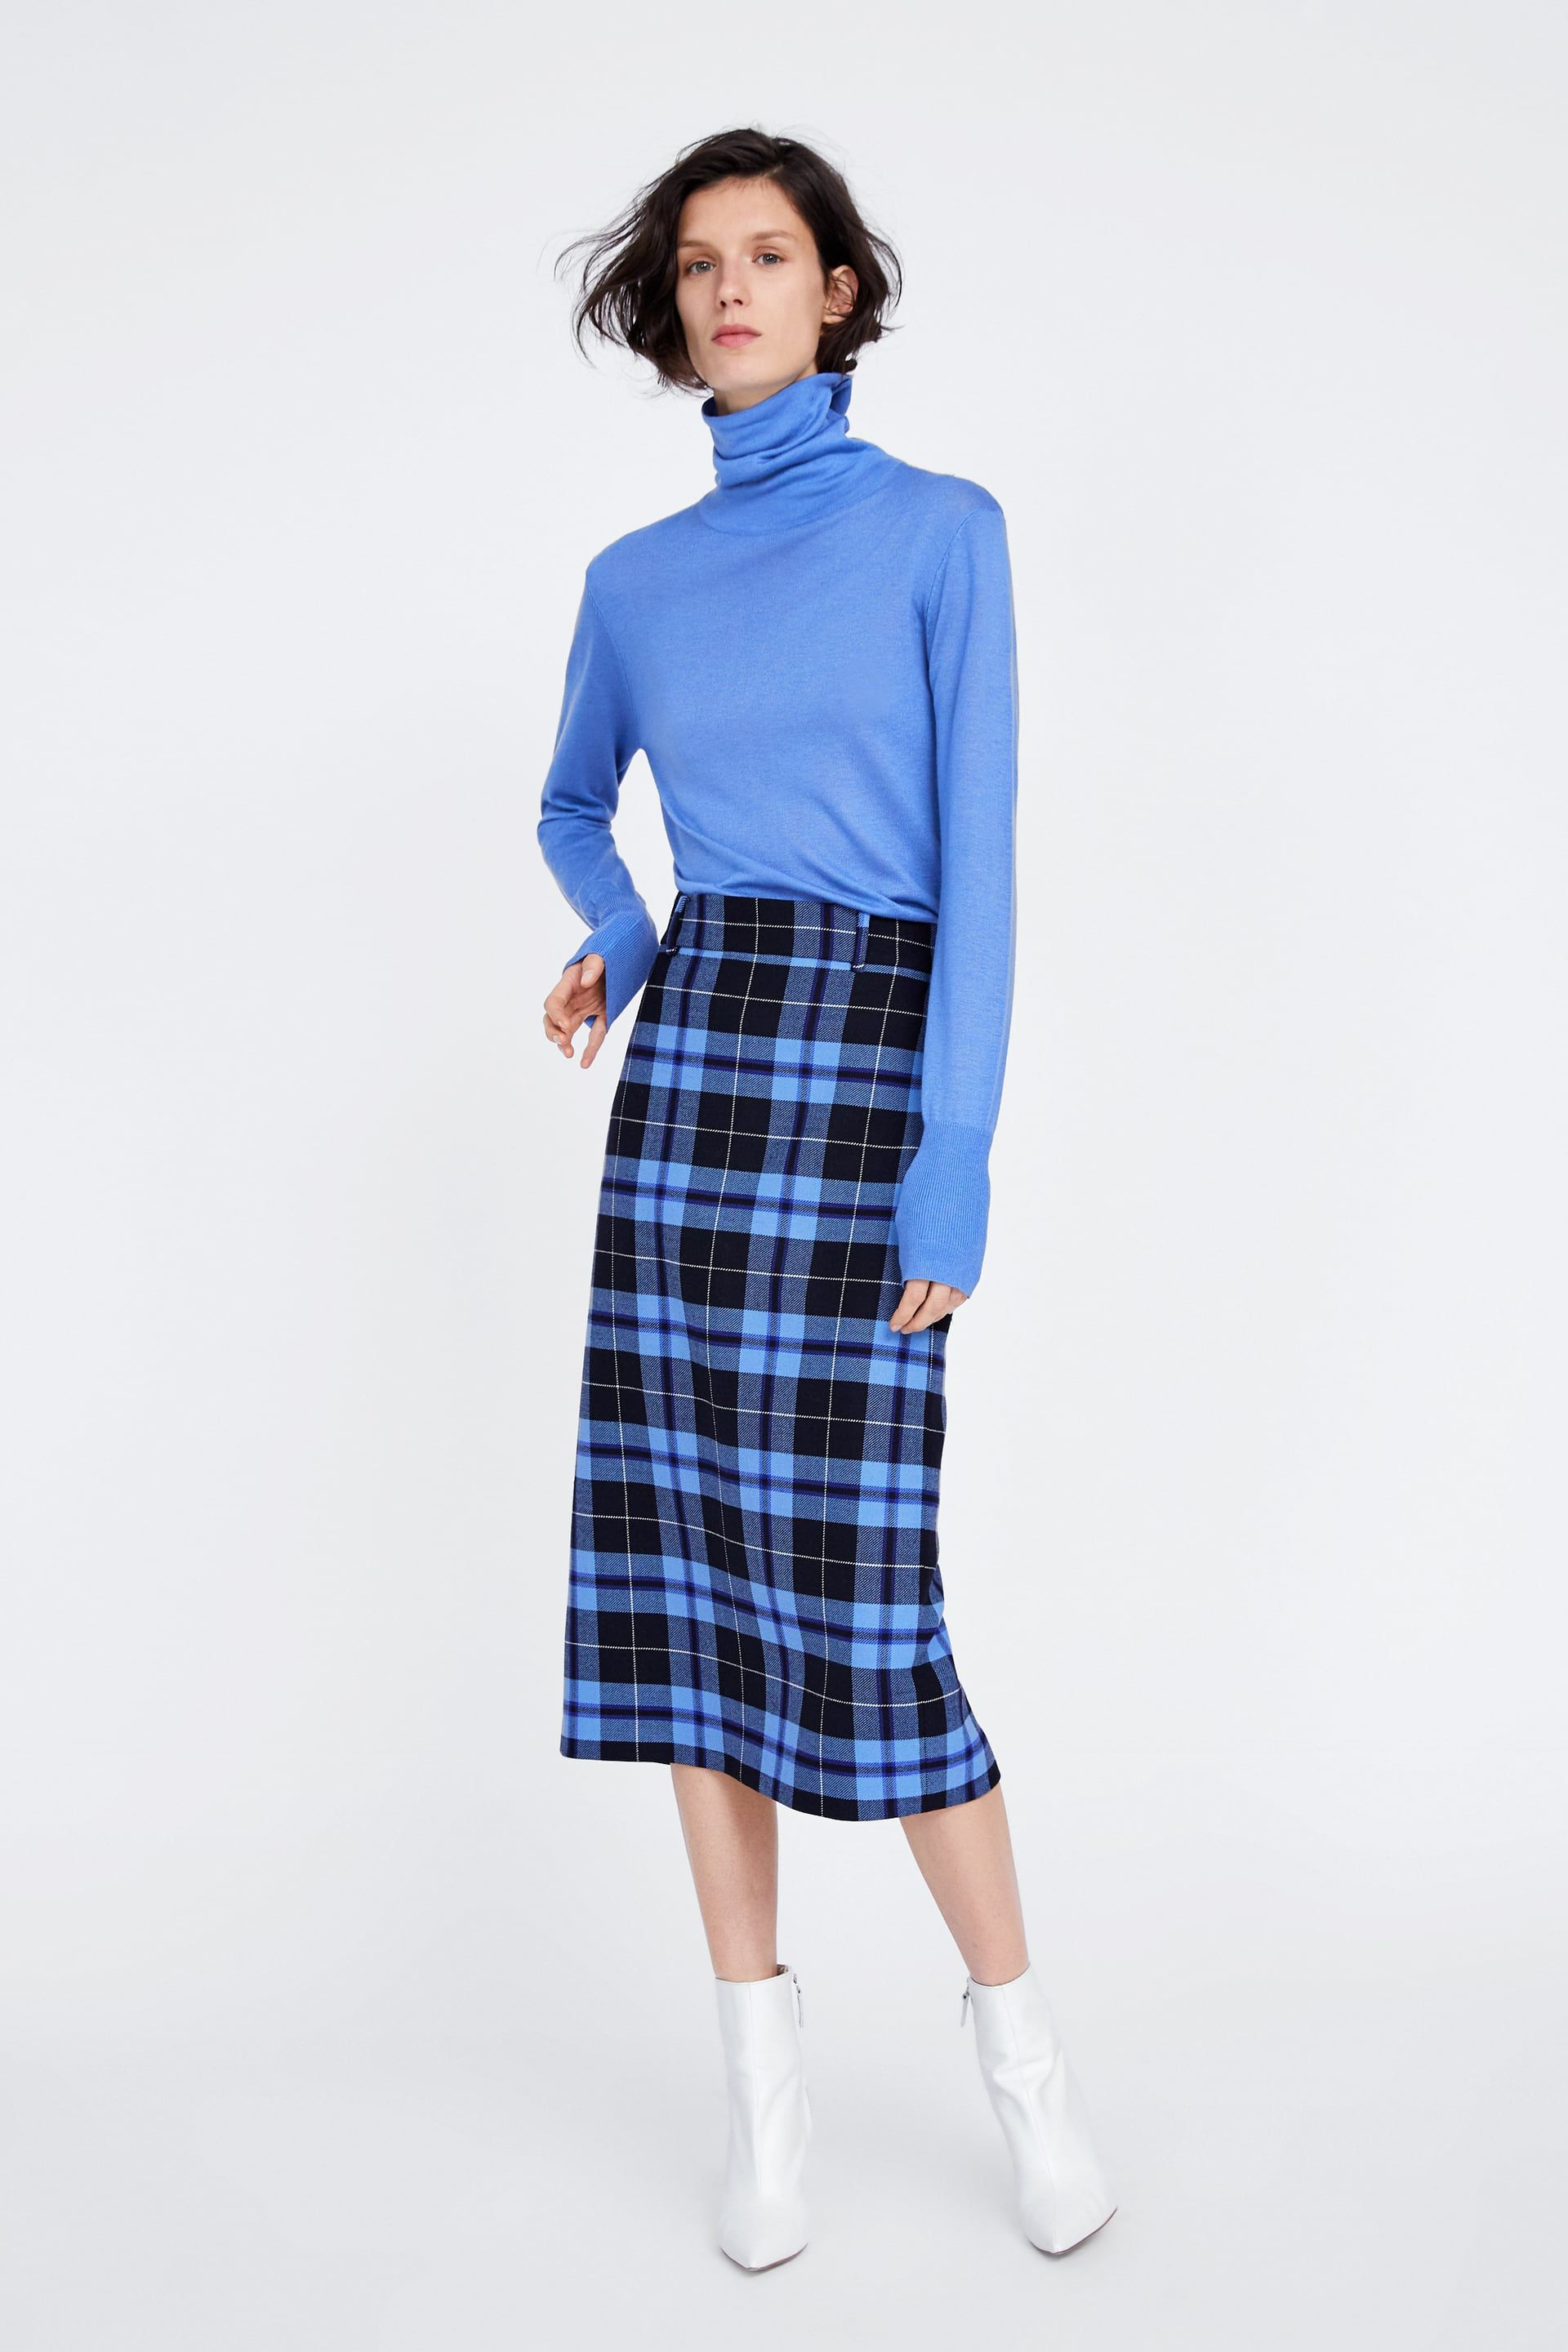 b947edad3c Image 1 of CHECK PENCIL SKIRT from Zara | Zara fashion in 2019 ...